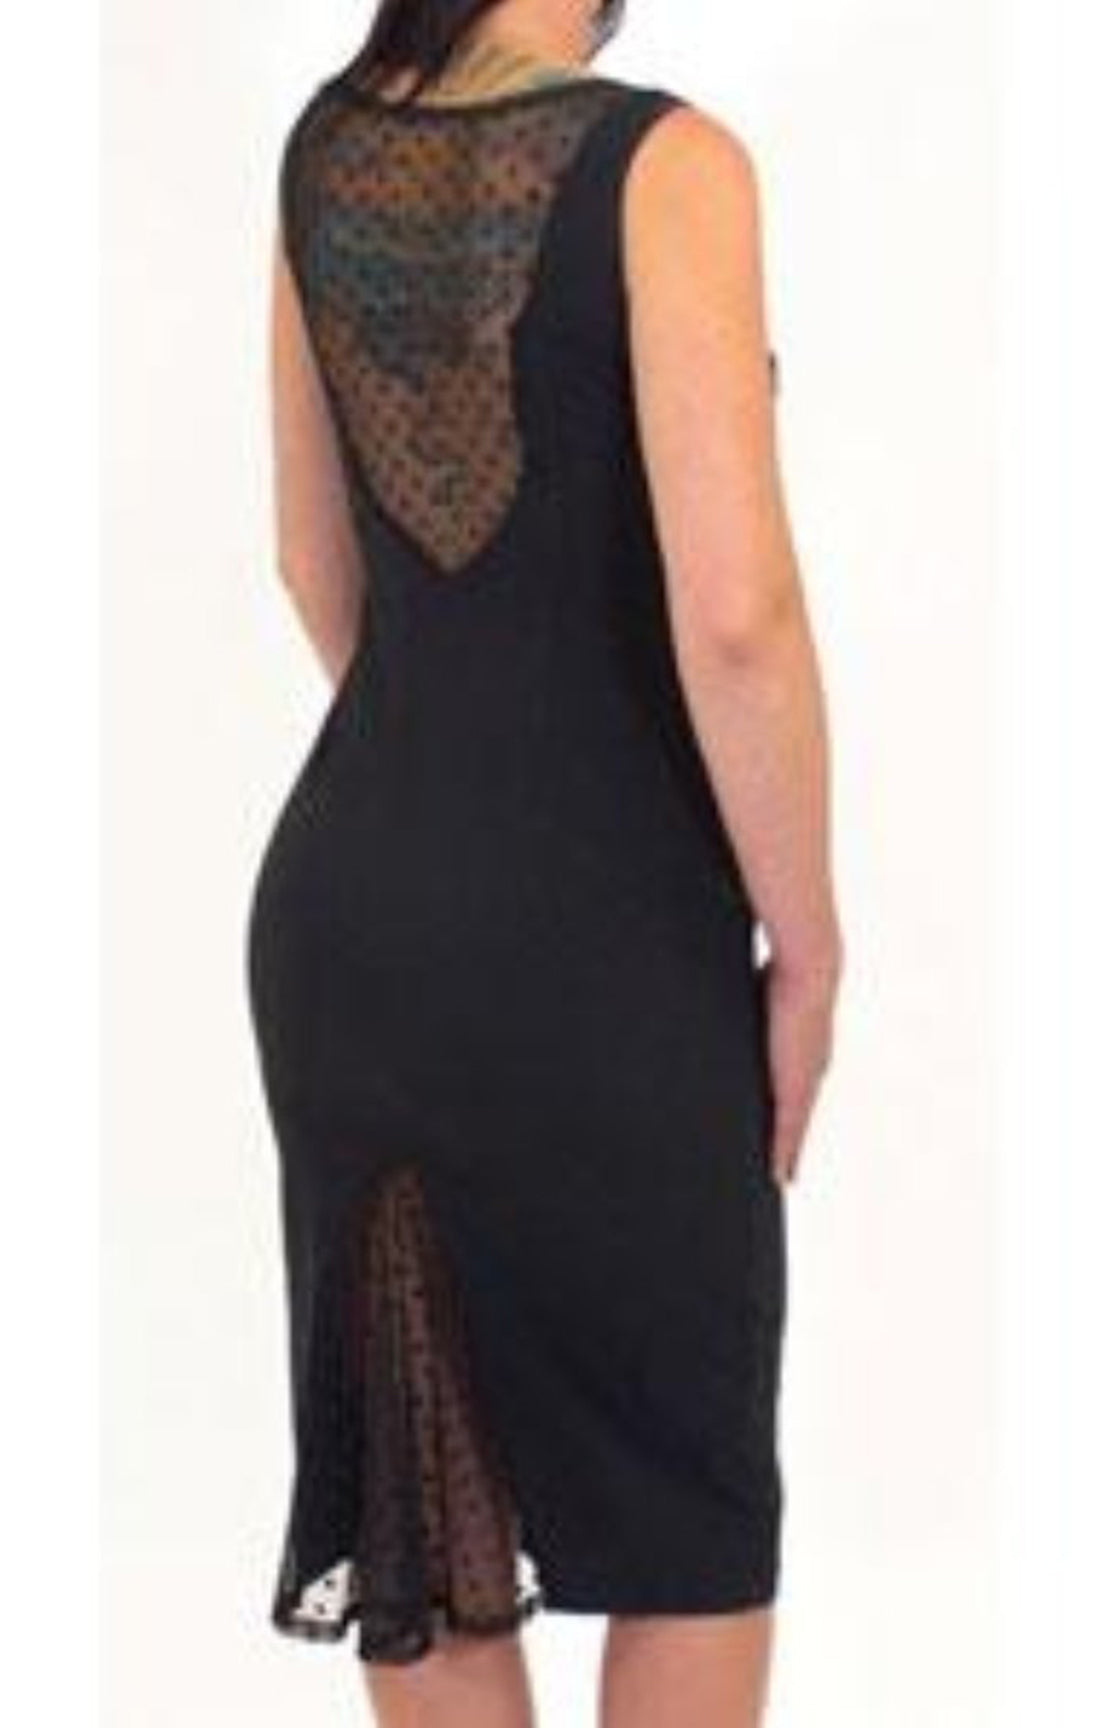 The CRY DANGER Womens Dress